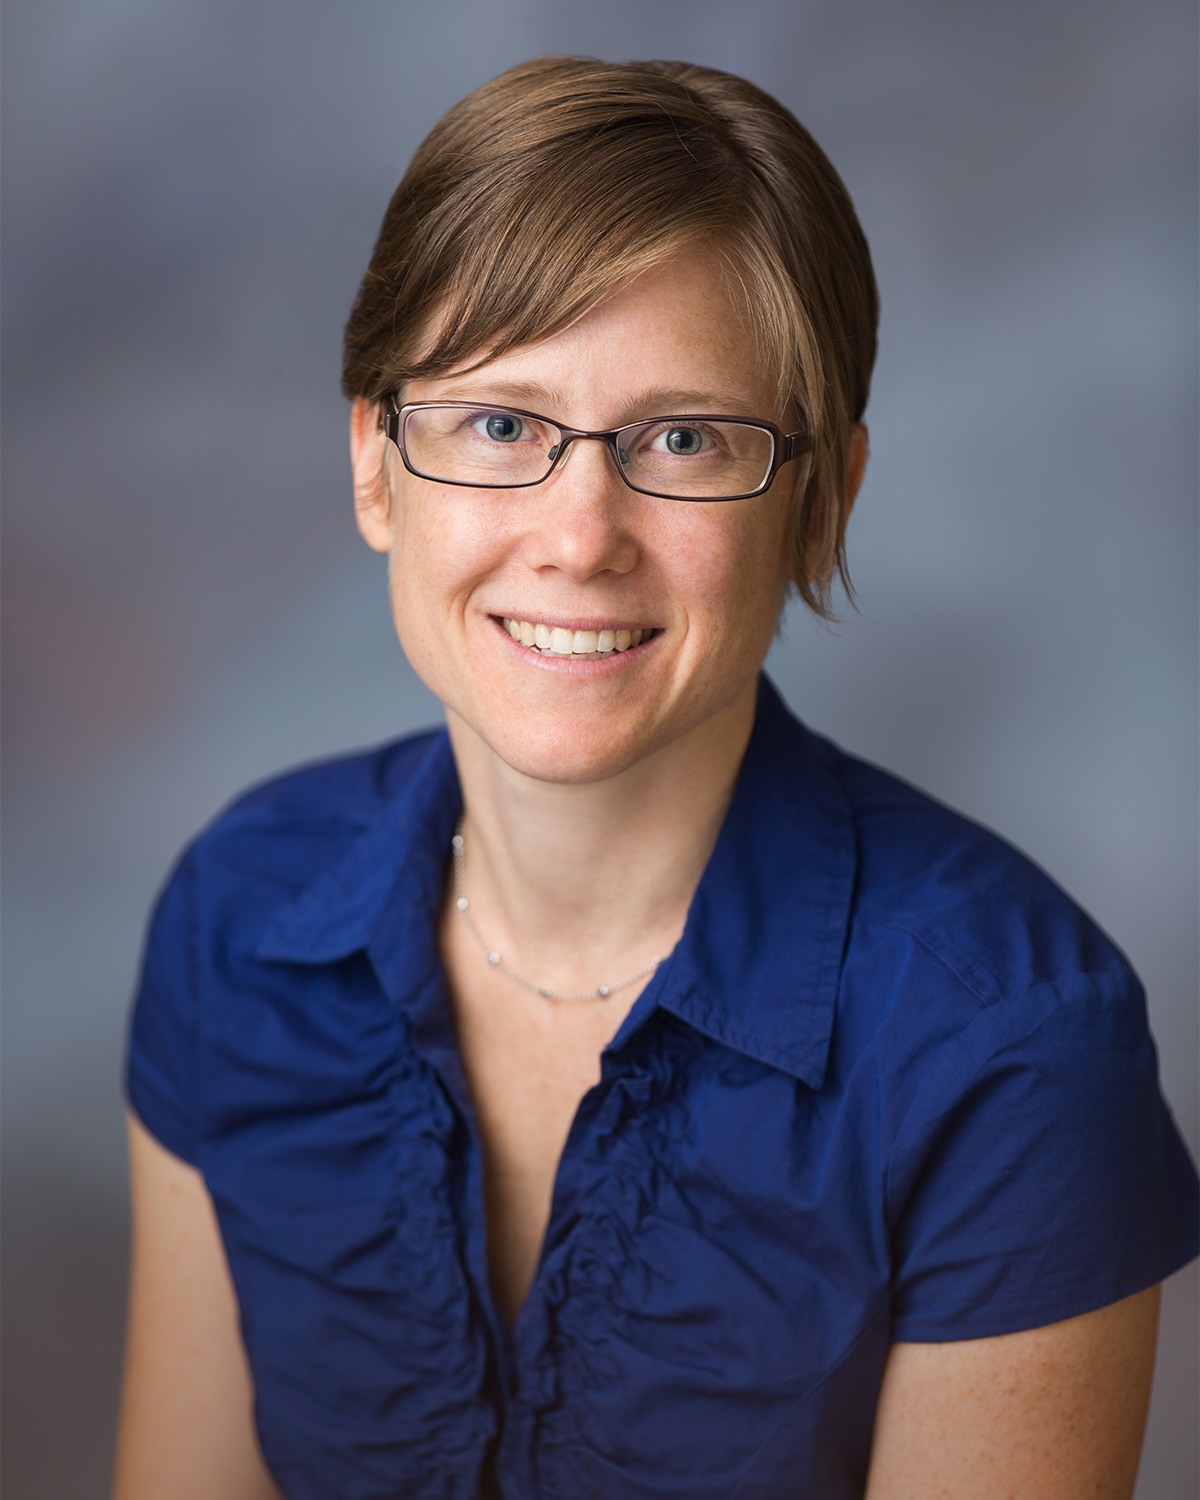 Lauren S. MacKenzie, CNM, MSN - Nurse-Midwife, Obstetrics and Gynecology, Portland, OR